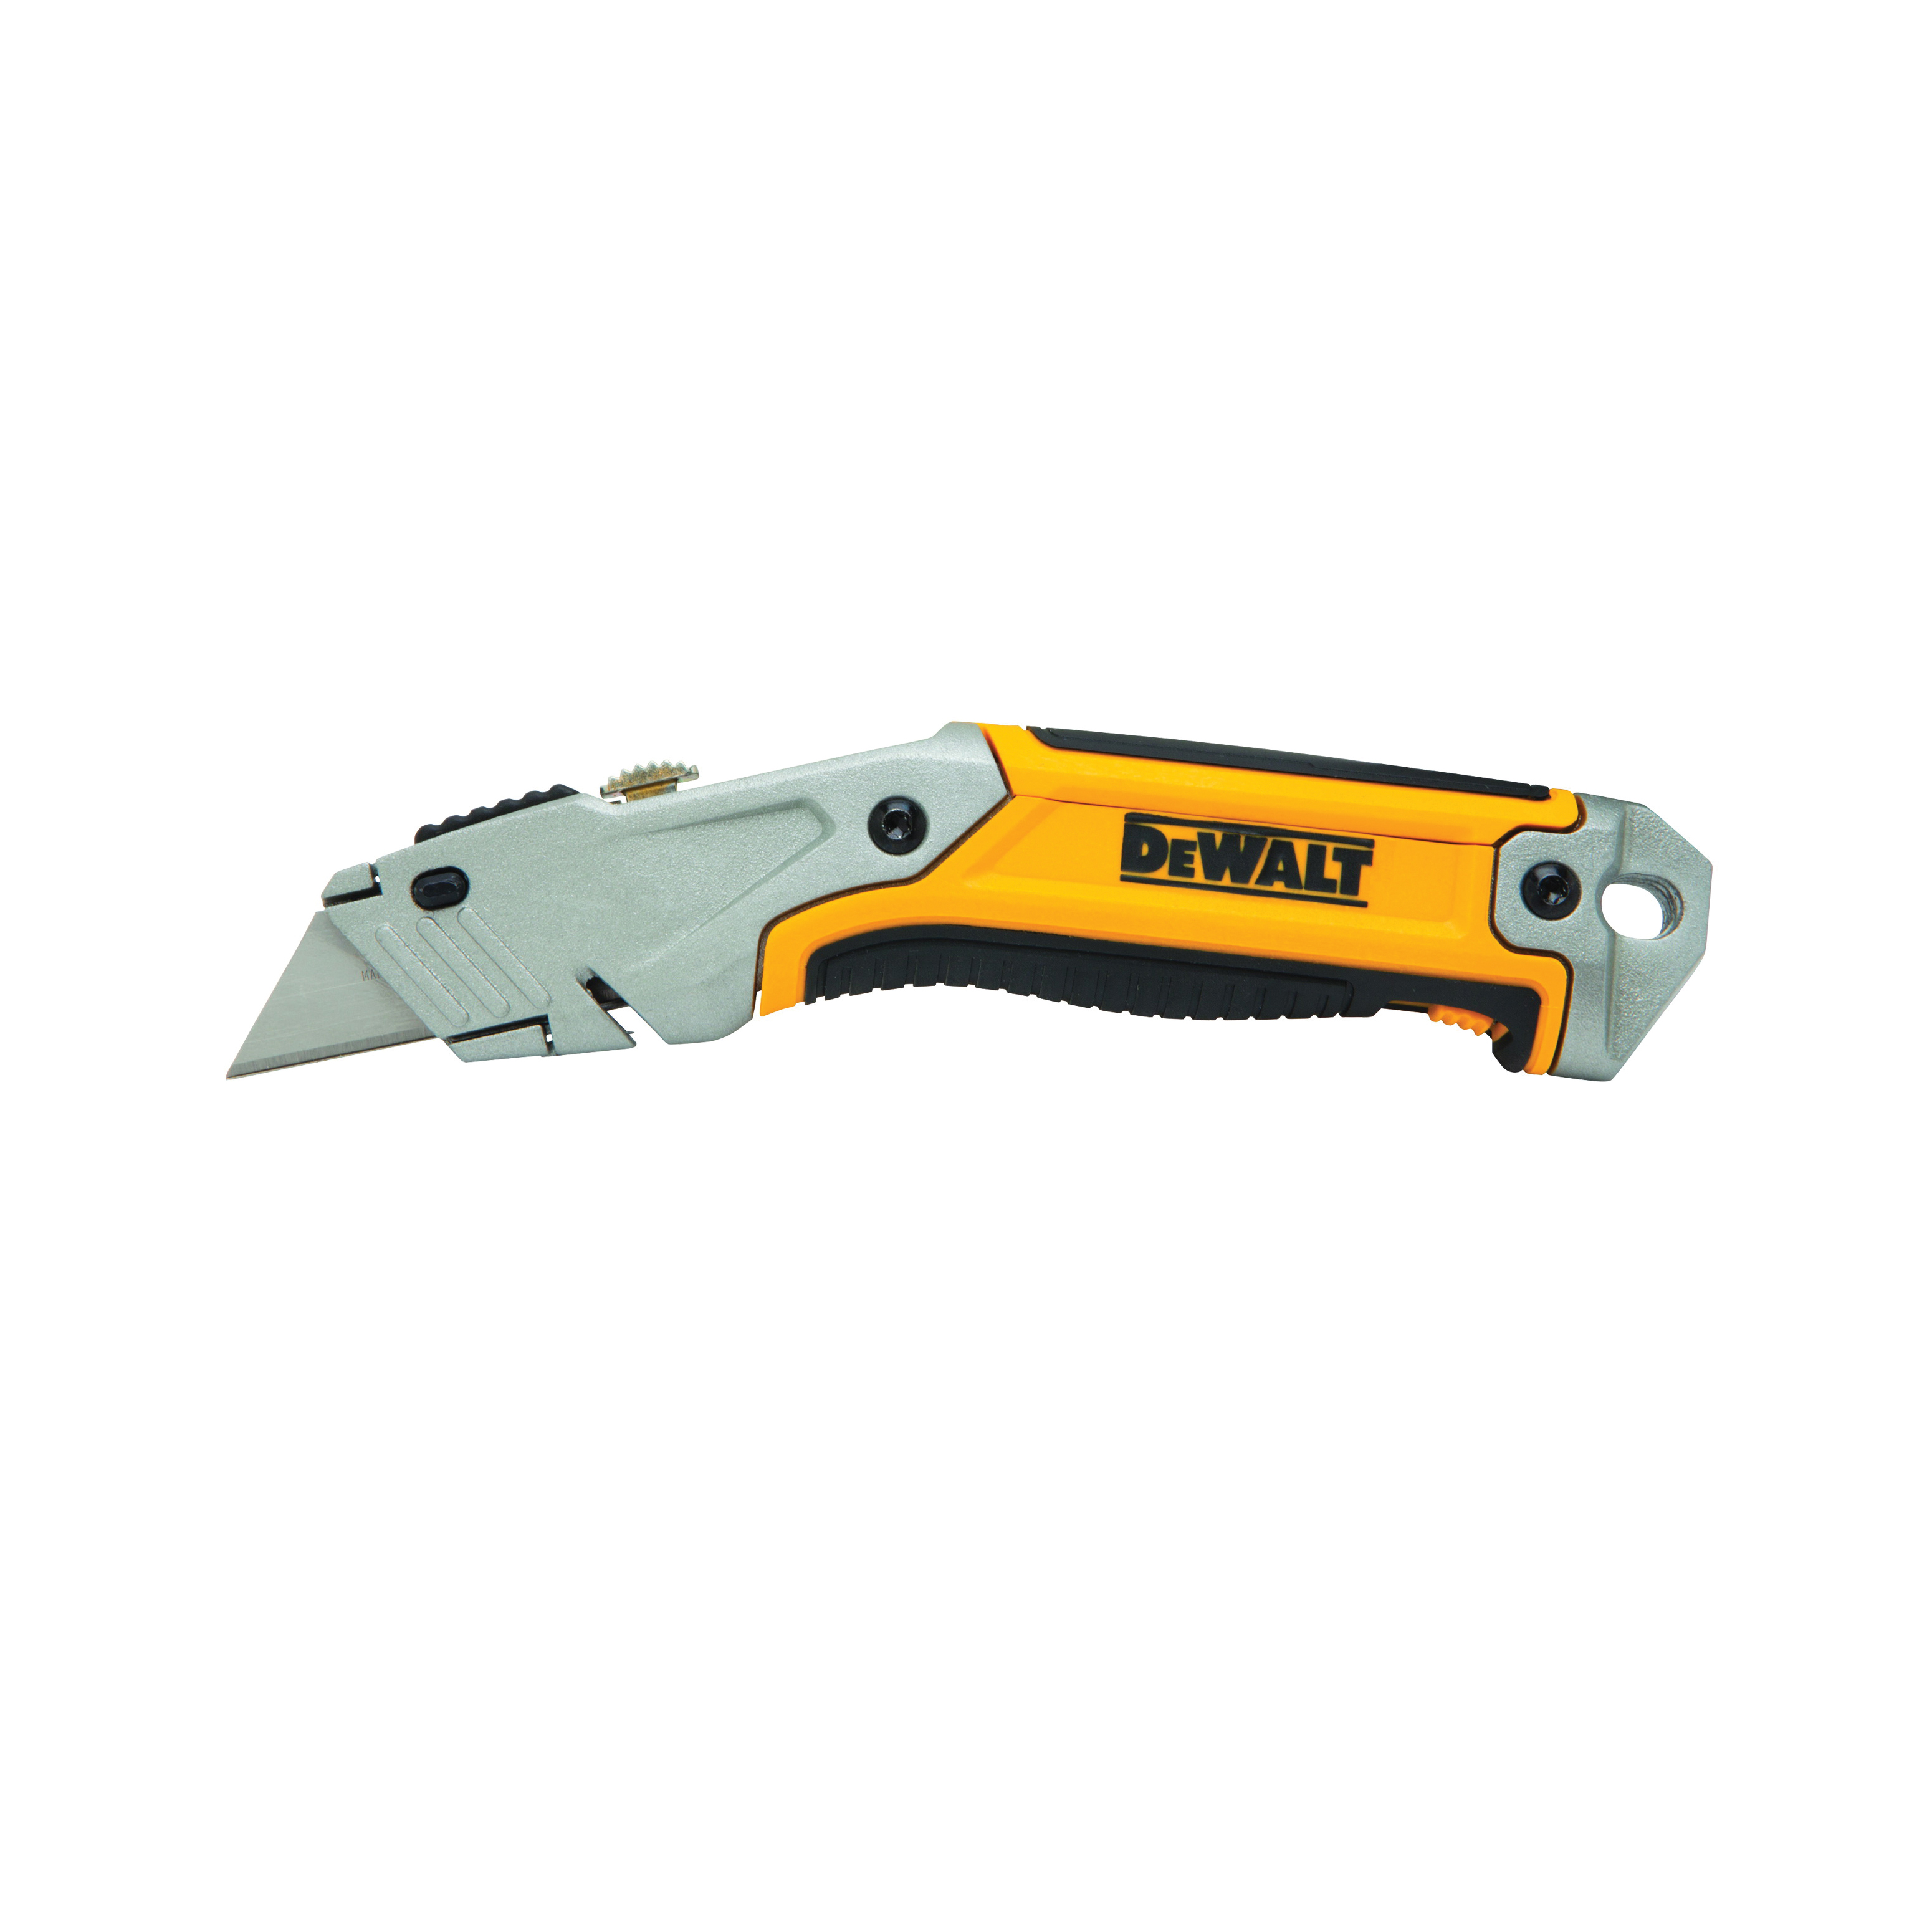 DeWALT® DWHT10046 Utility Knife, Retractable Snap-Off Blade, Quick-Change, Carbon Steel Blade, 3 Blades Included, 6-3/4 in OAL